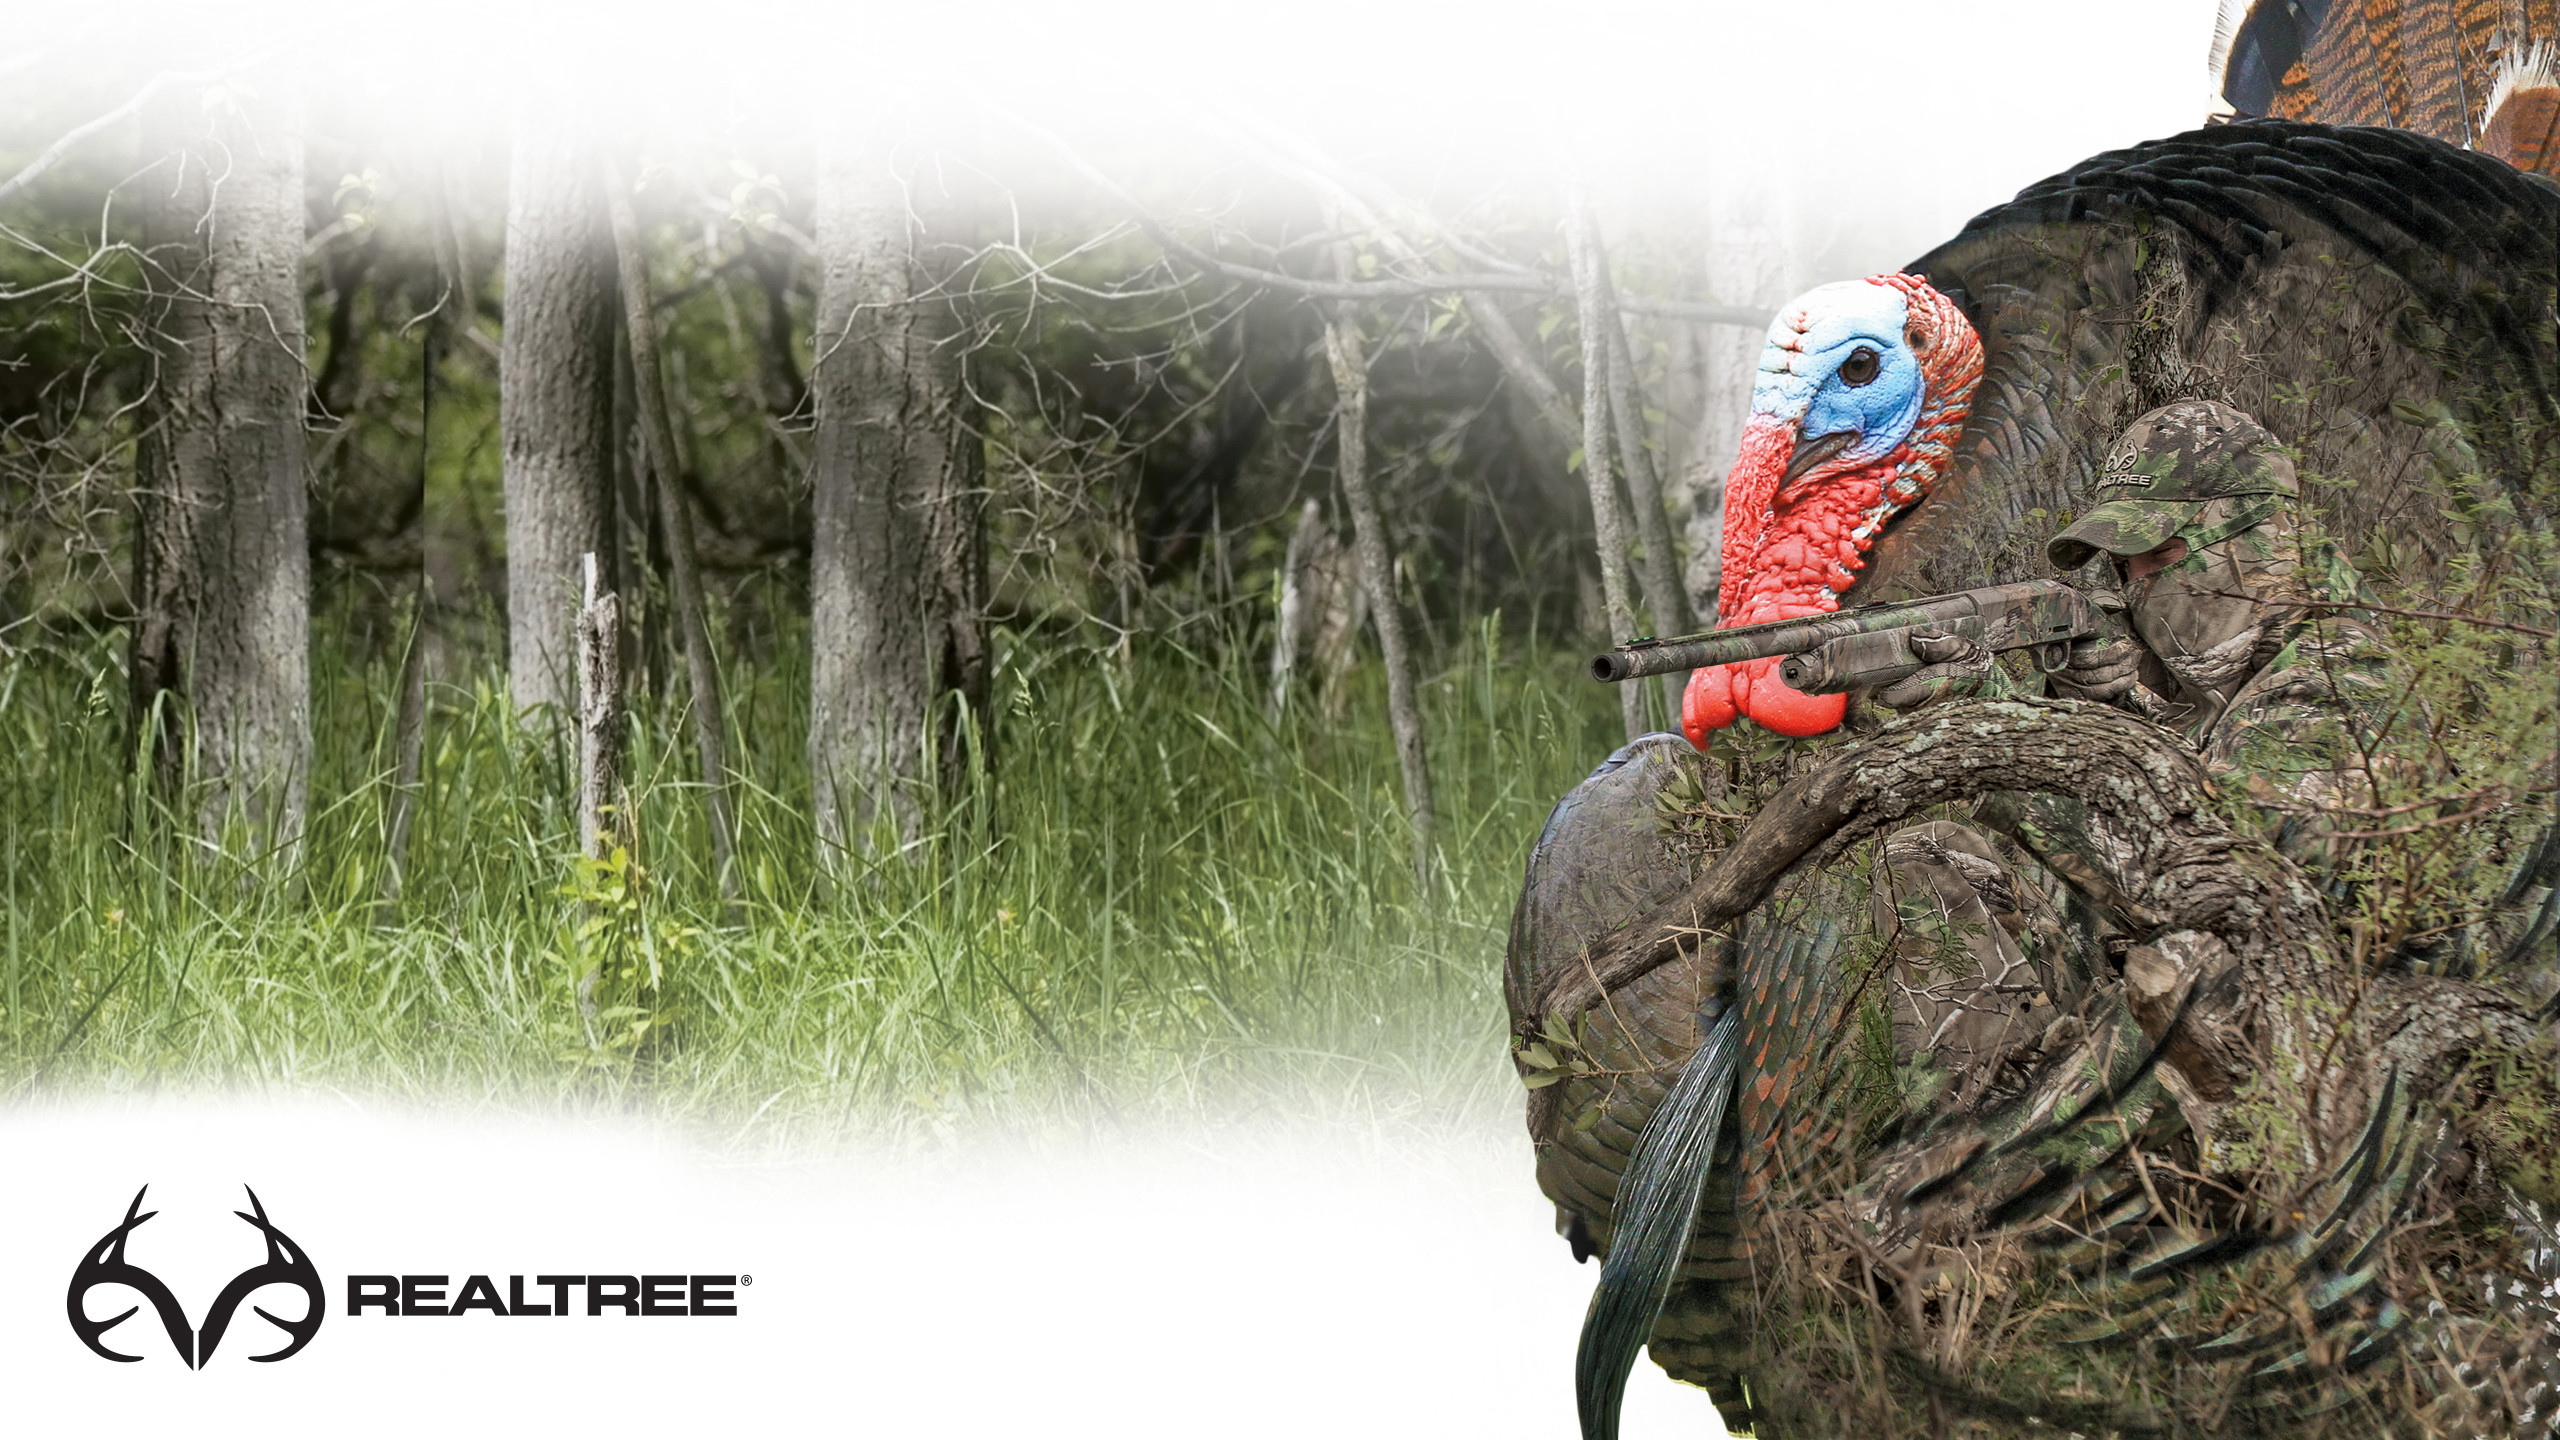 Realtree Wallpaper For Computer: Realtree Wallpapers (74+ Background Pictures